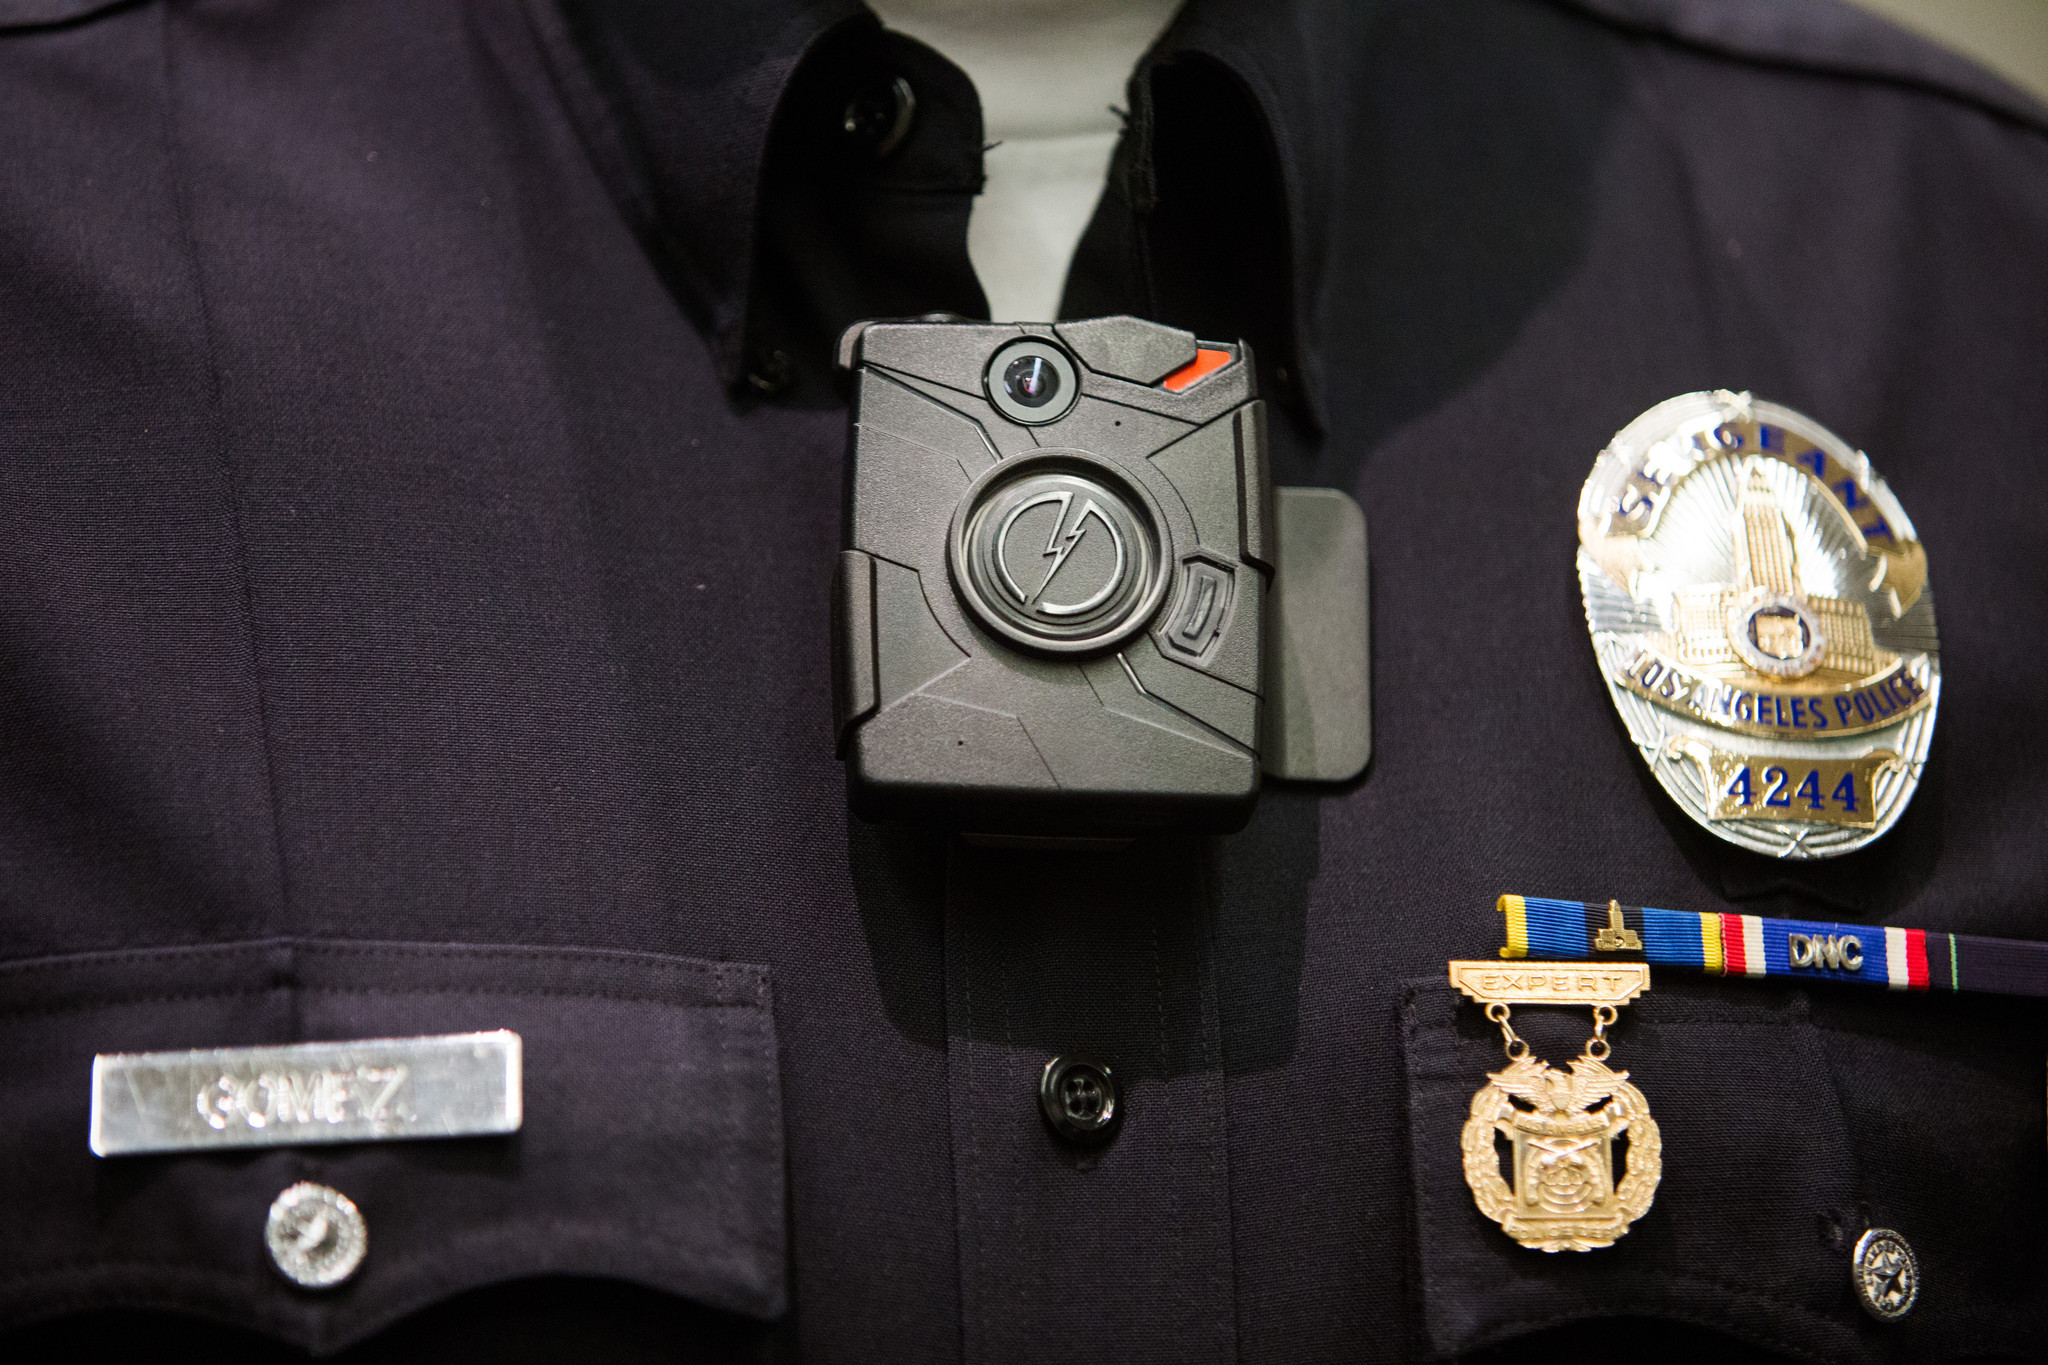 L.A. will buy 7,000 body cameras for police officers - LA Times